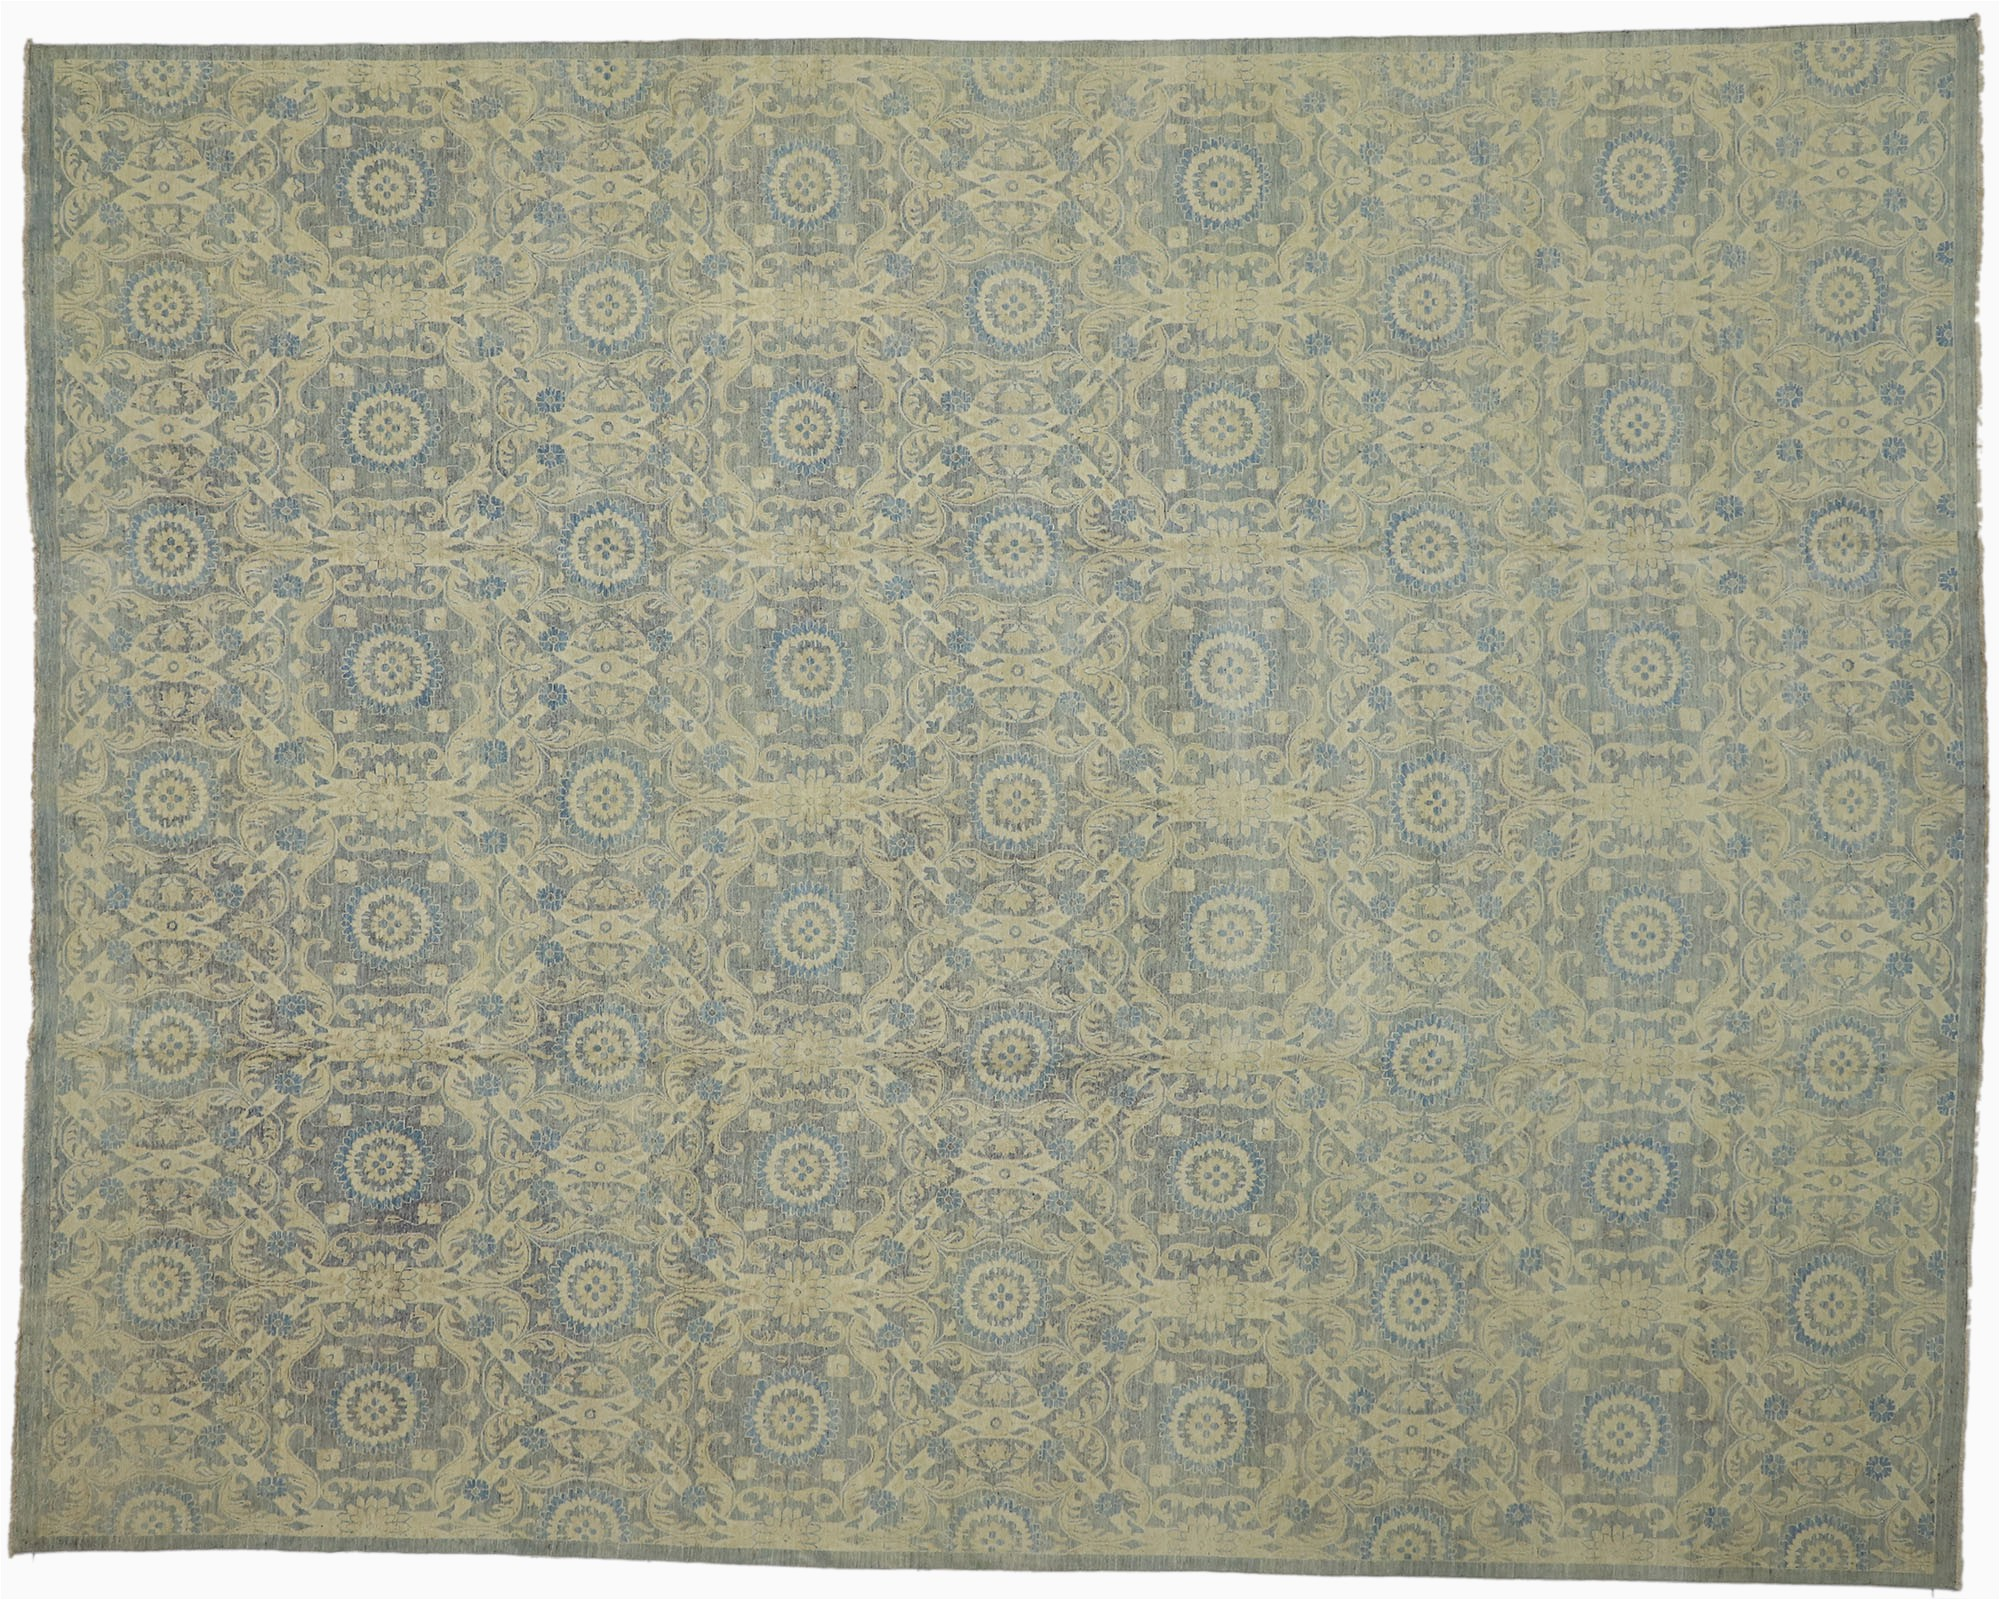 11 by 14 area Rugs 11 X 14 Transitional area Rug